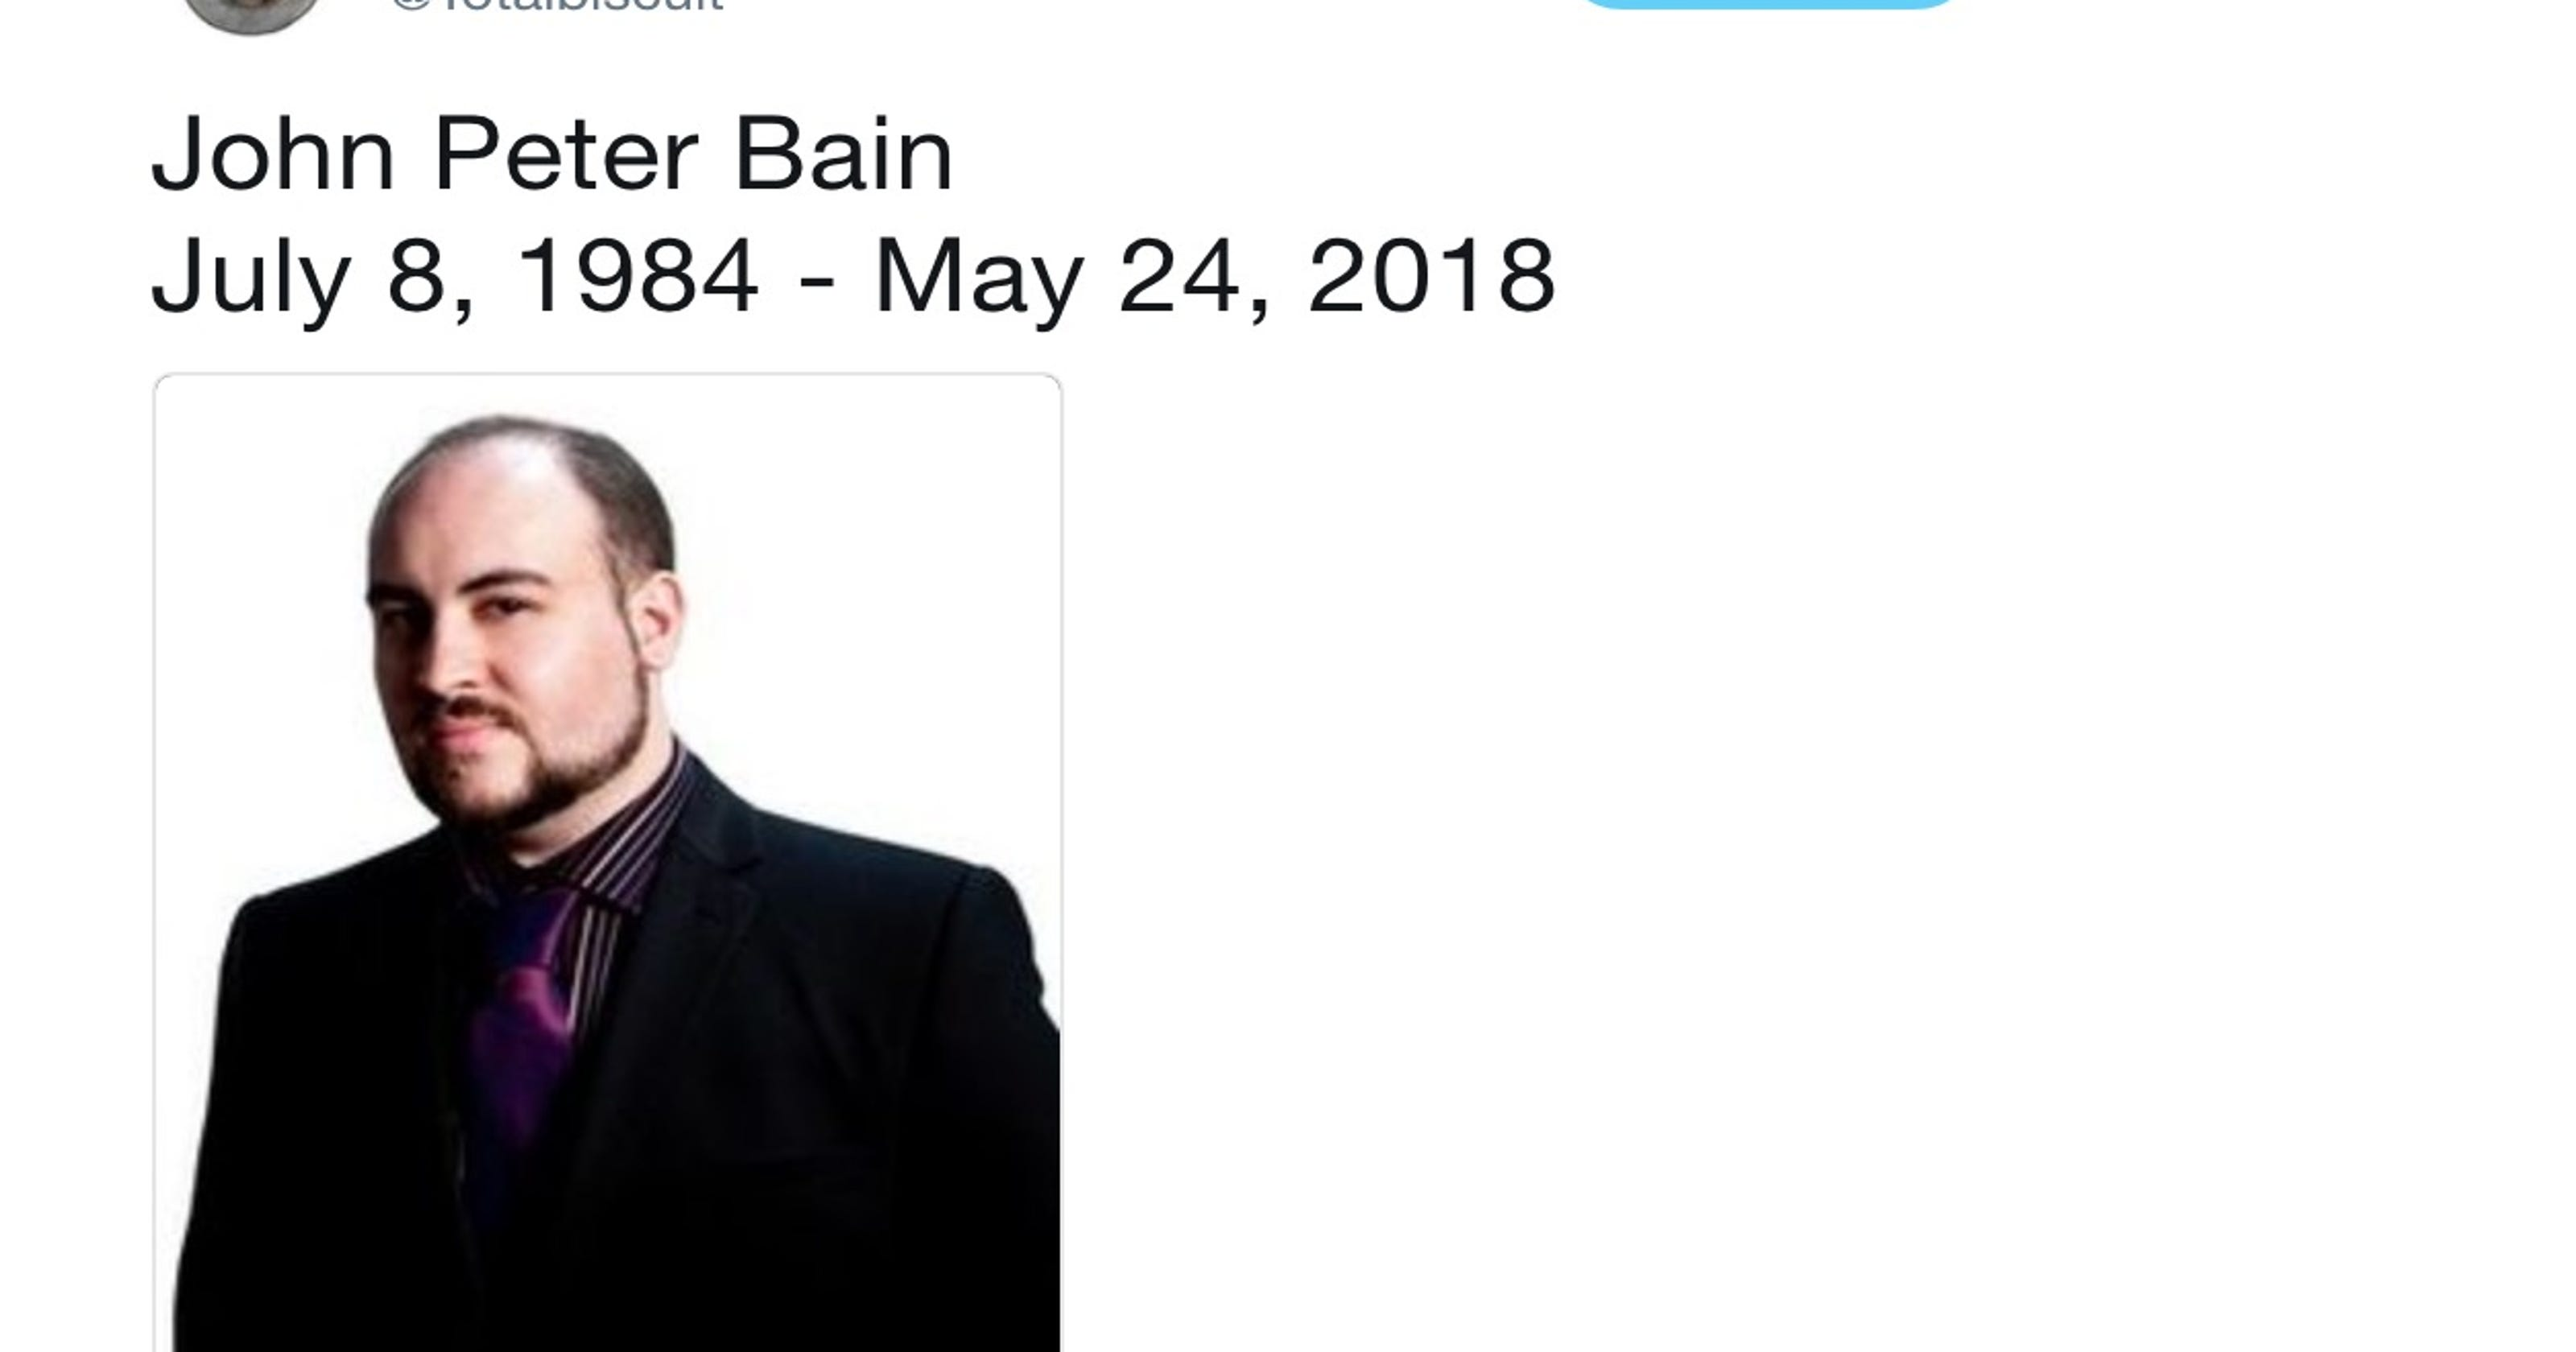 TotalBiscuit, YouTube video game critic John Bain dies of cancer at 33